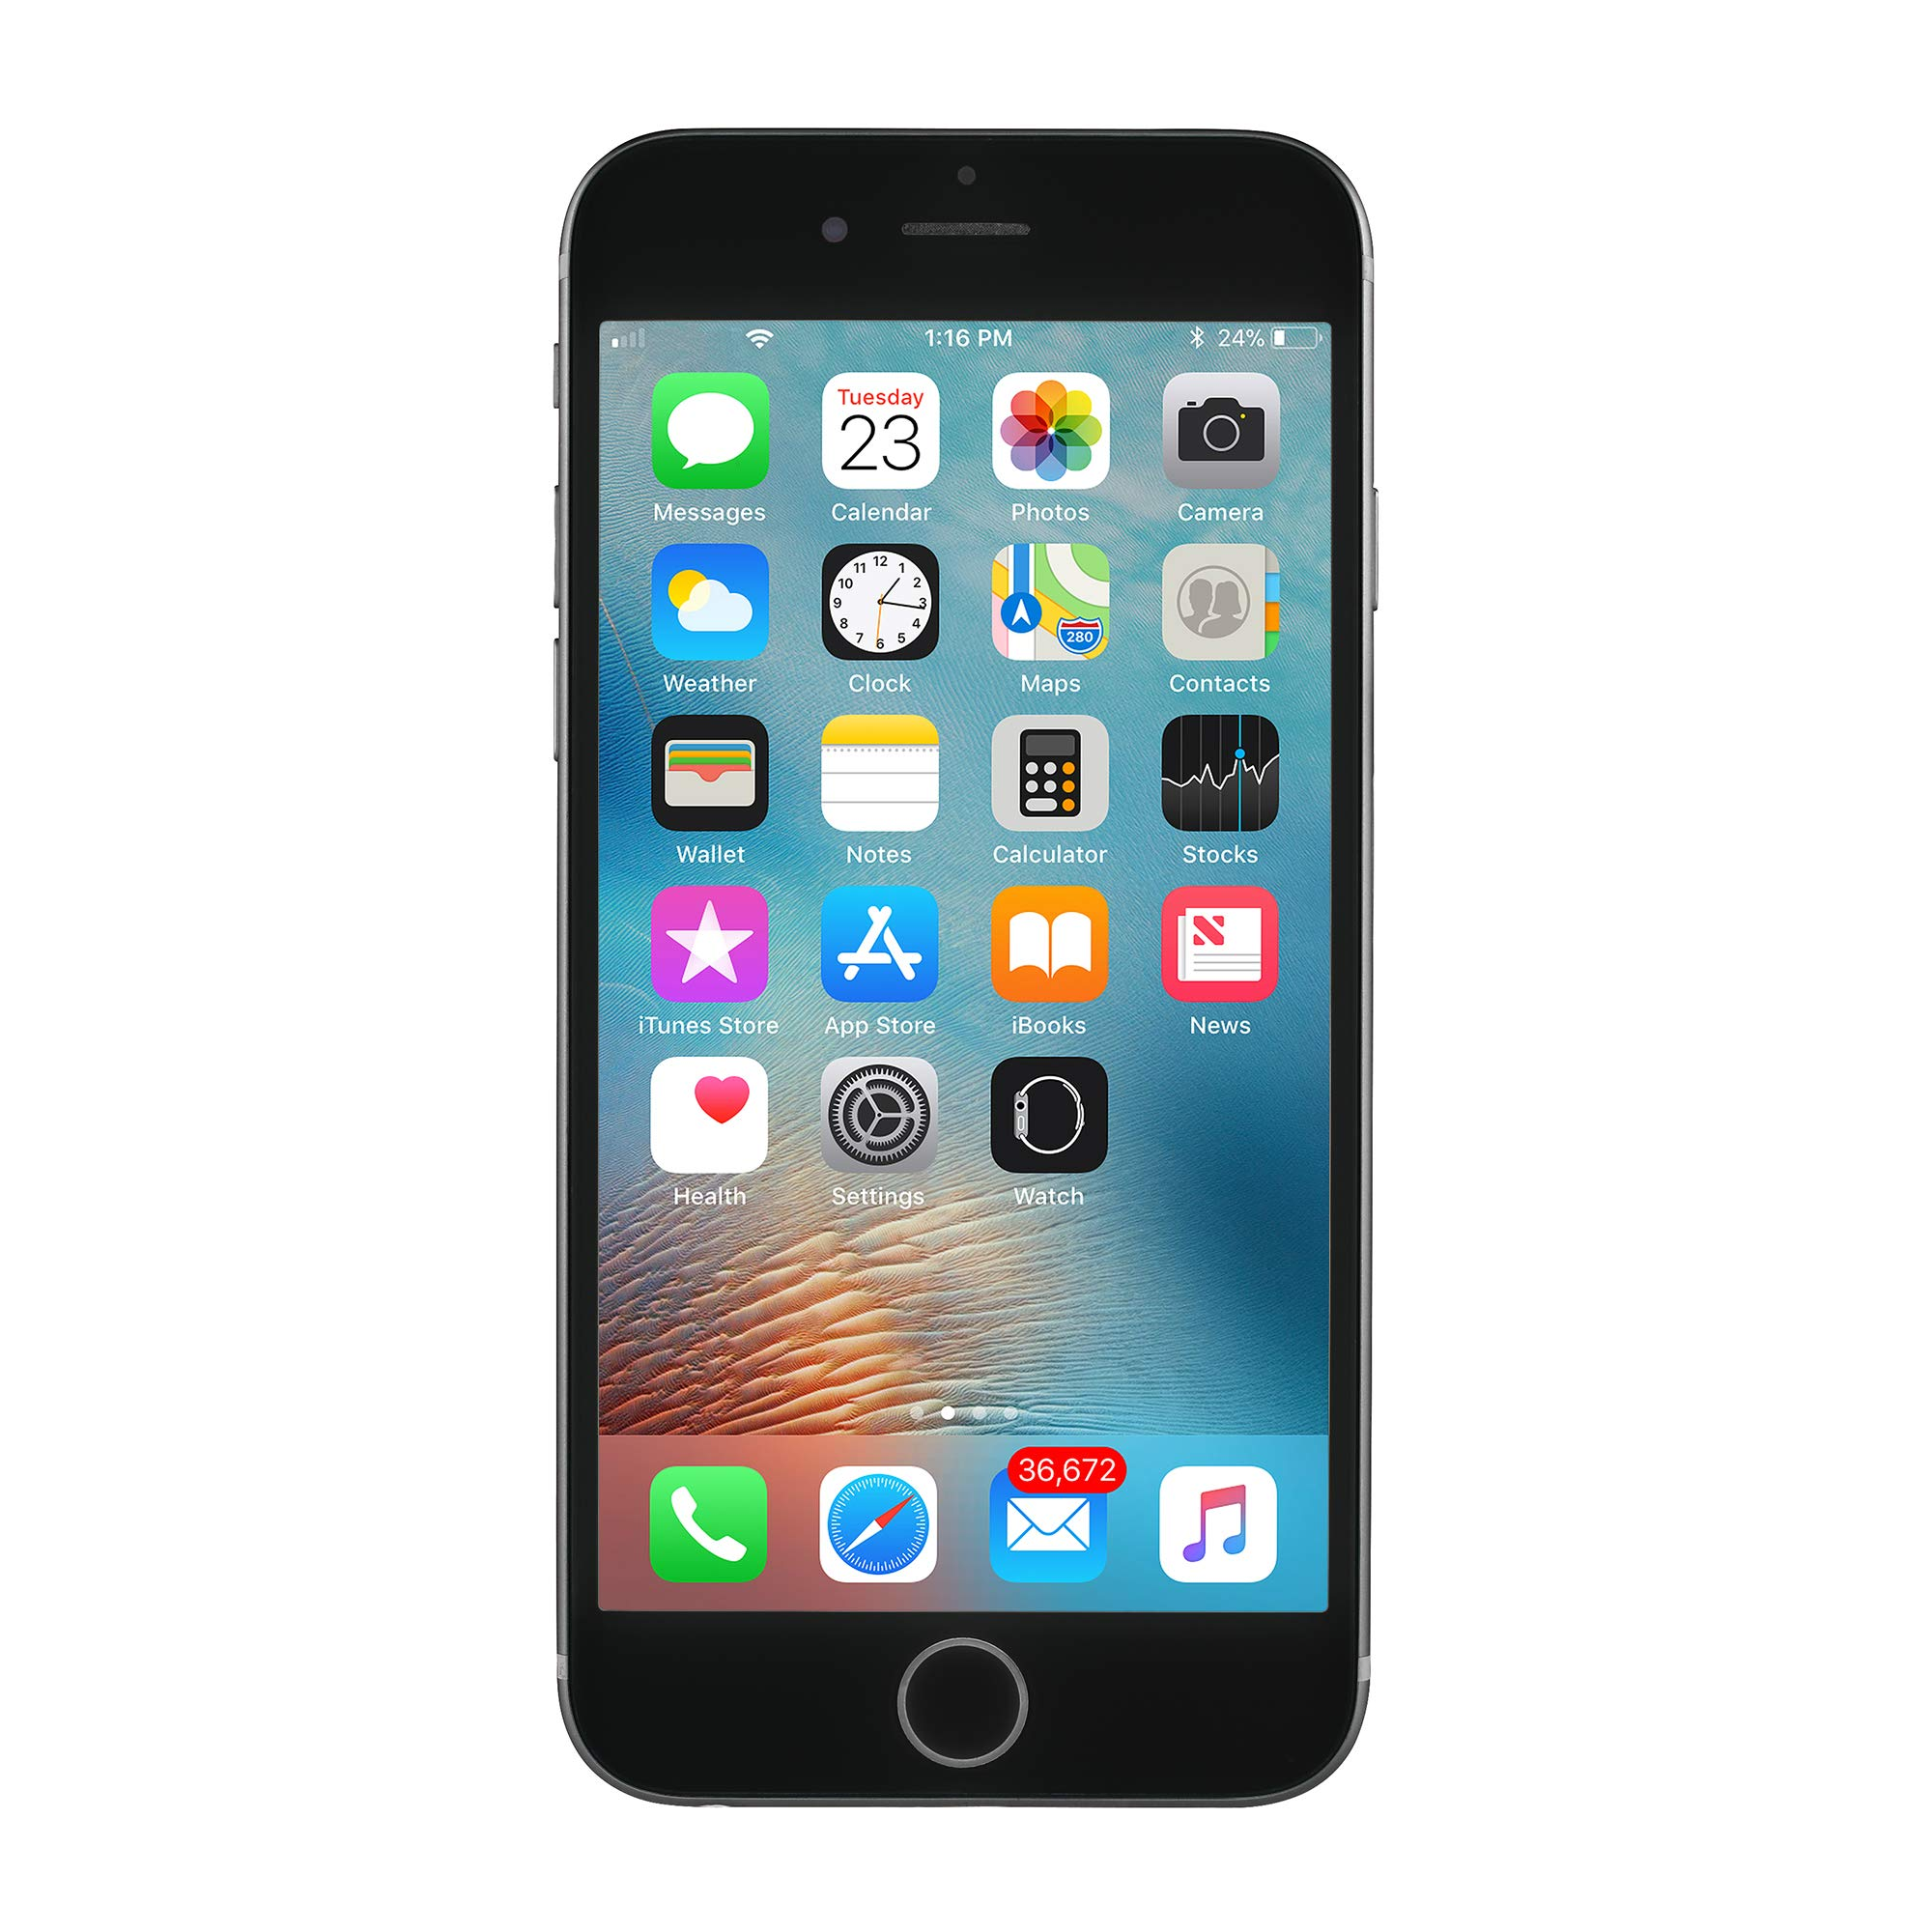 Apple iPhone 6S, Fully Unlocked, 16GB - Space Gray (Renewed)